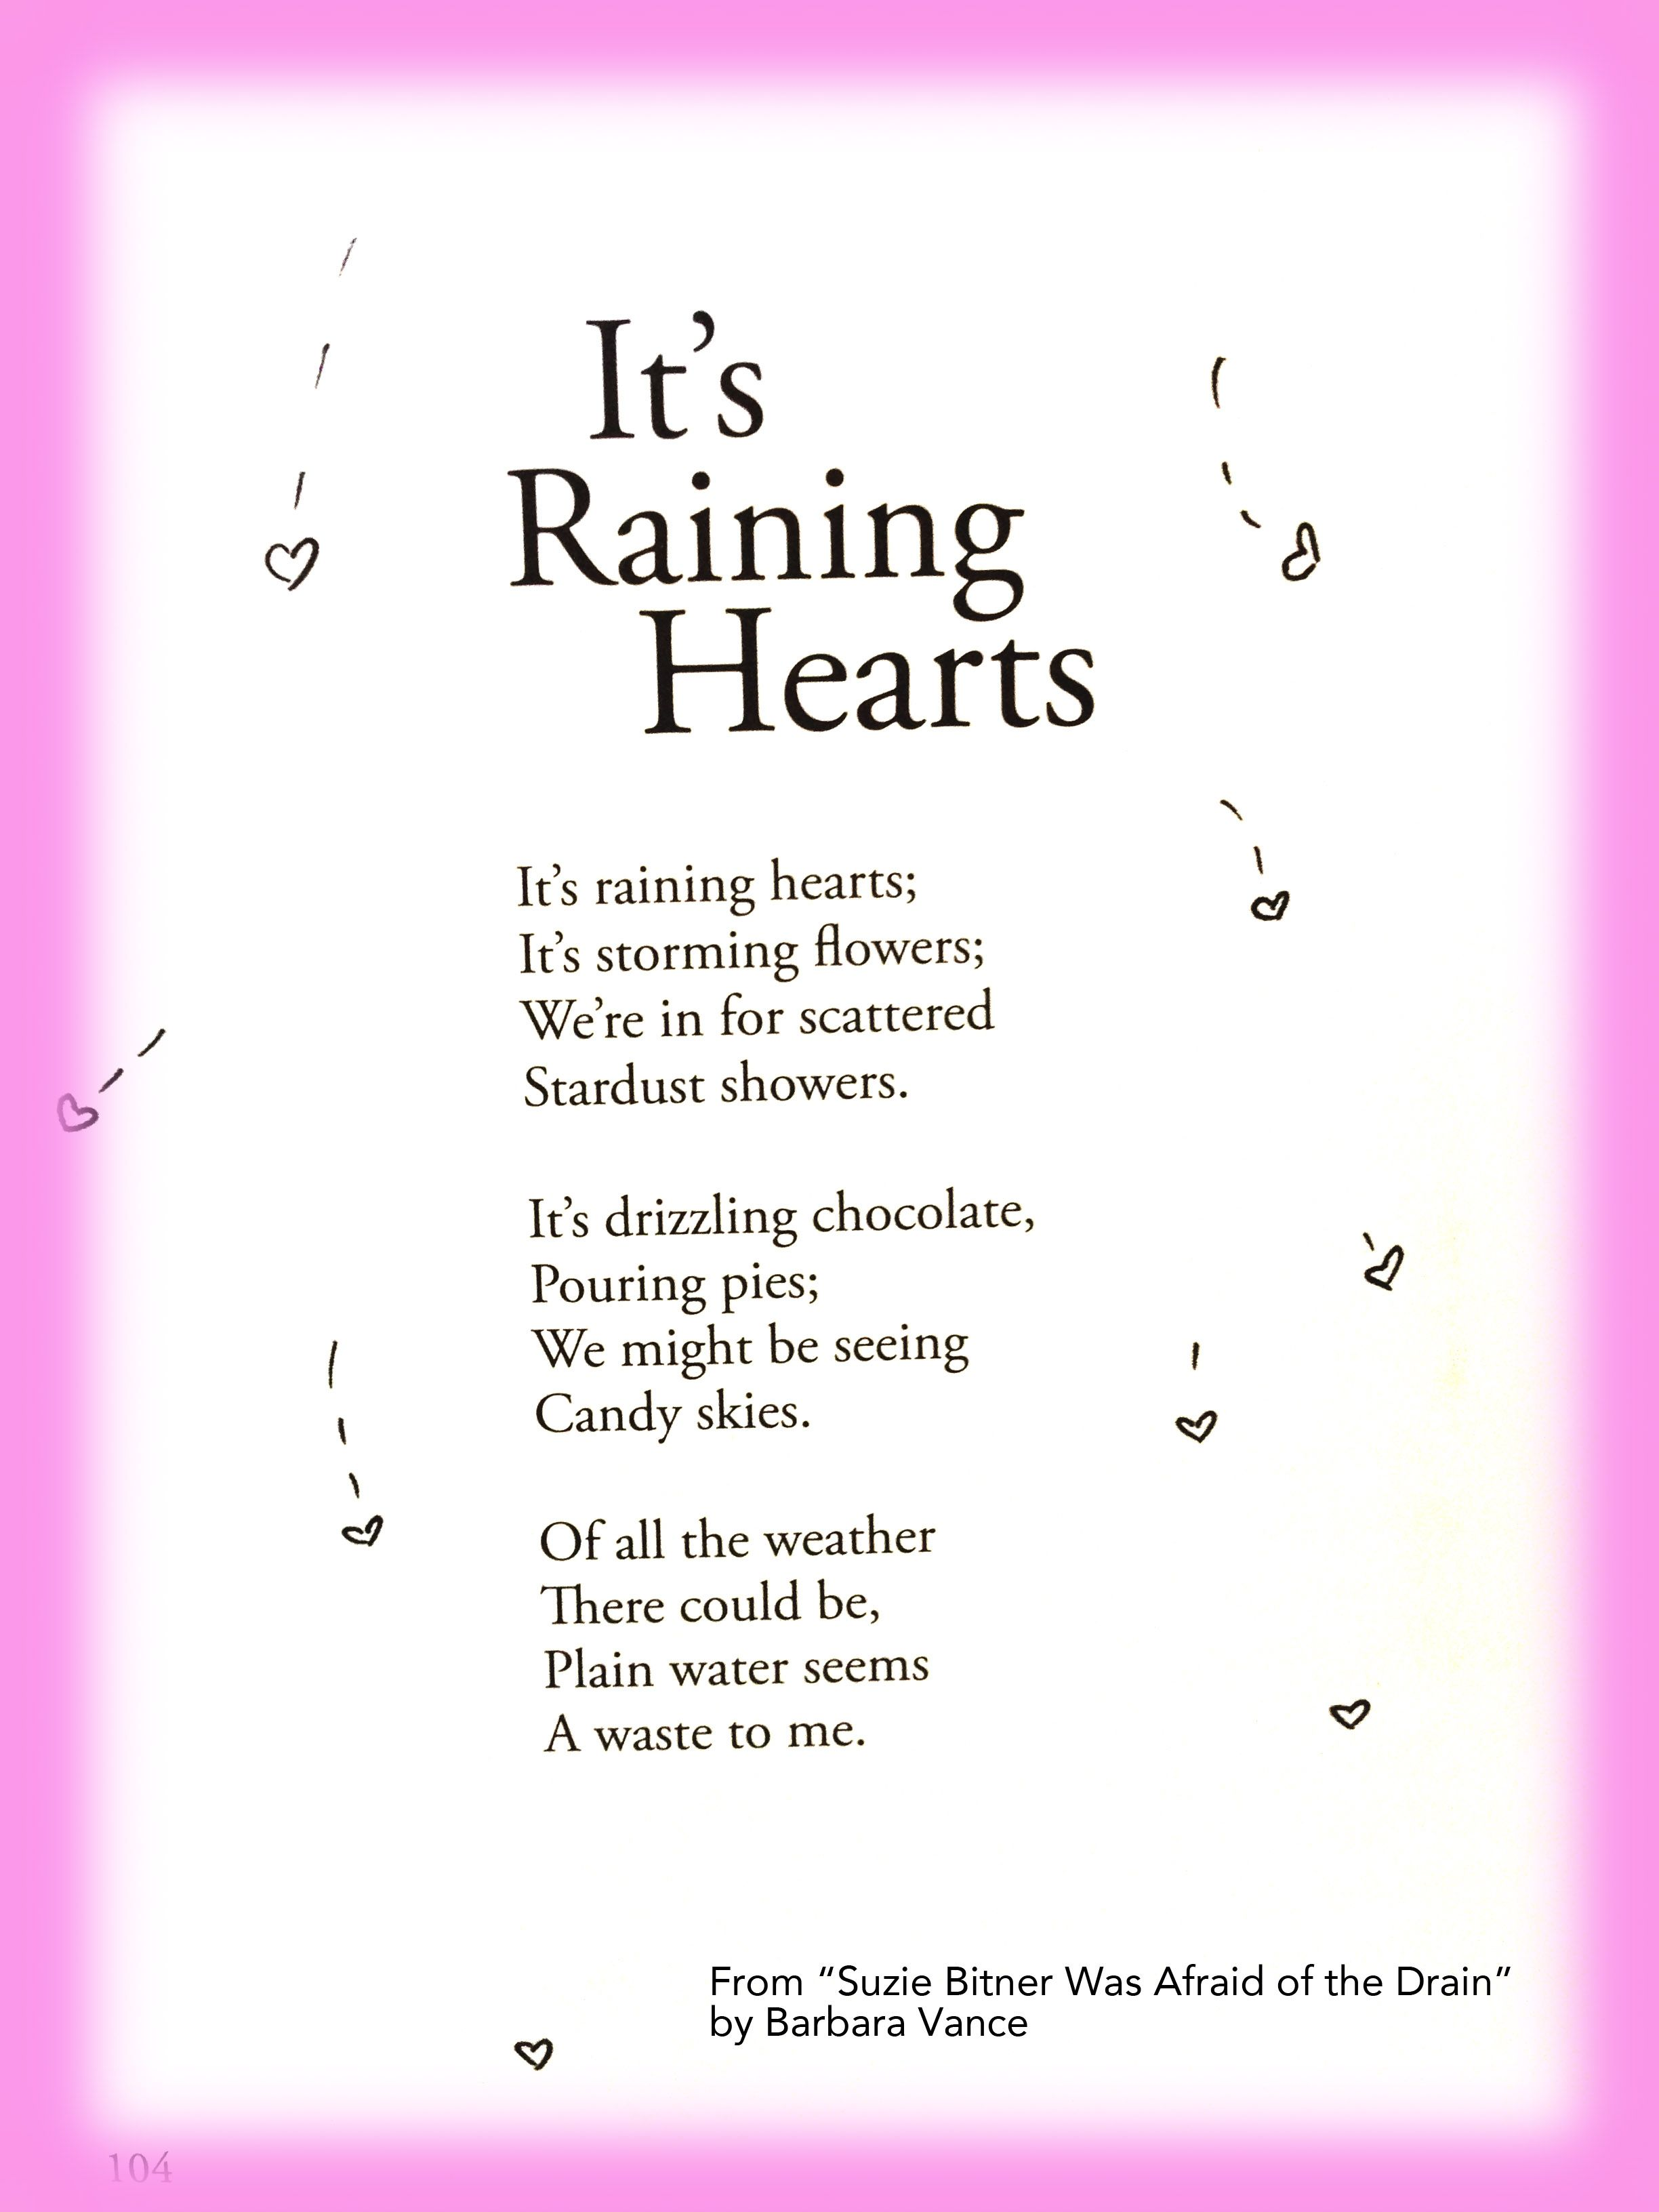 cute children s poem about weather and creativity Great for school